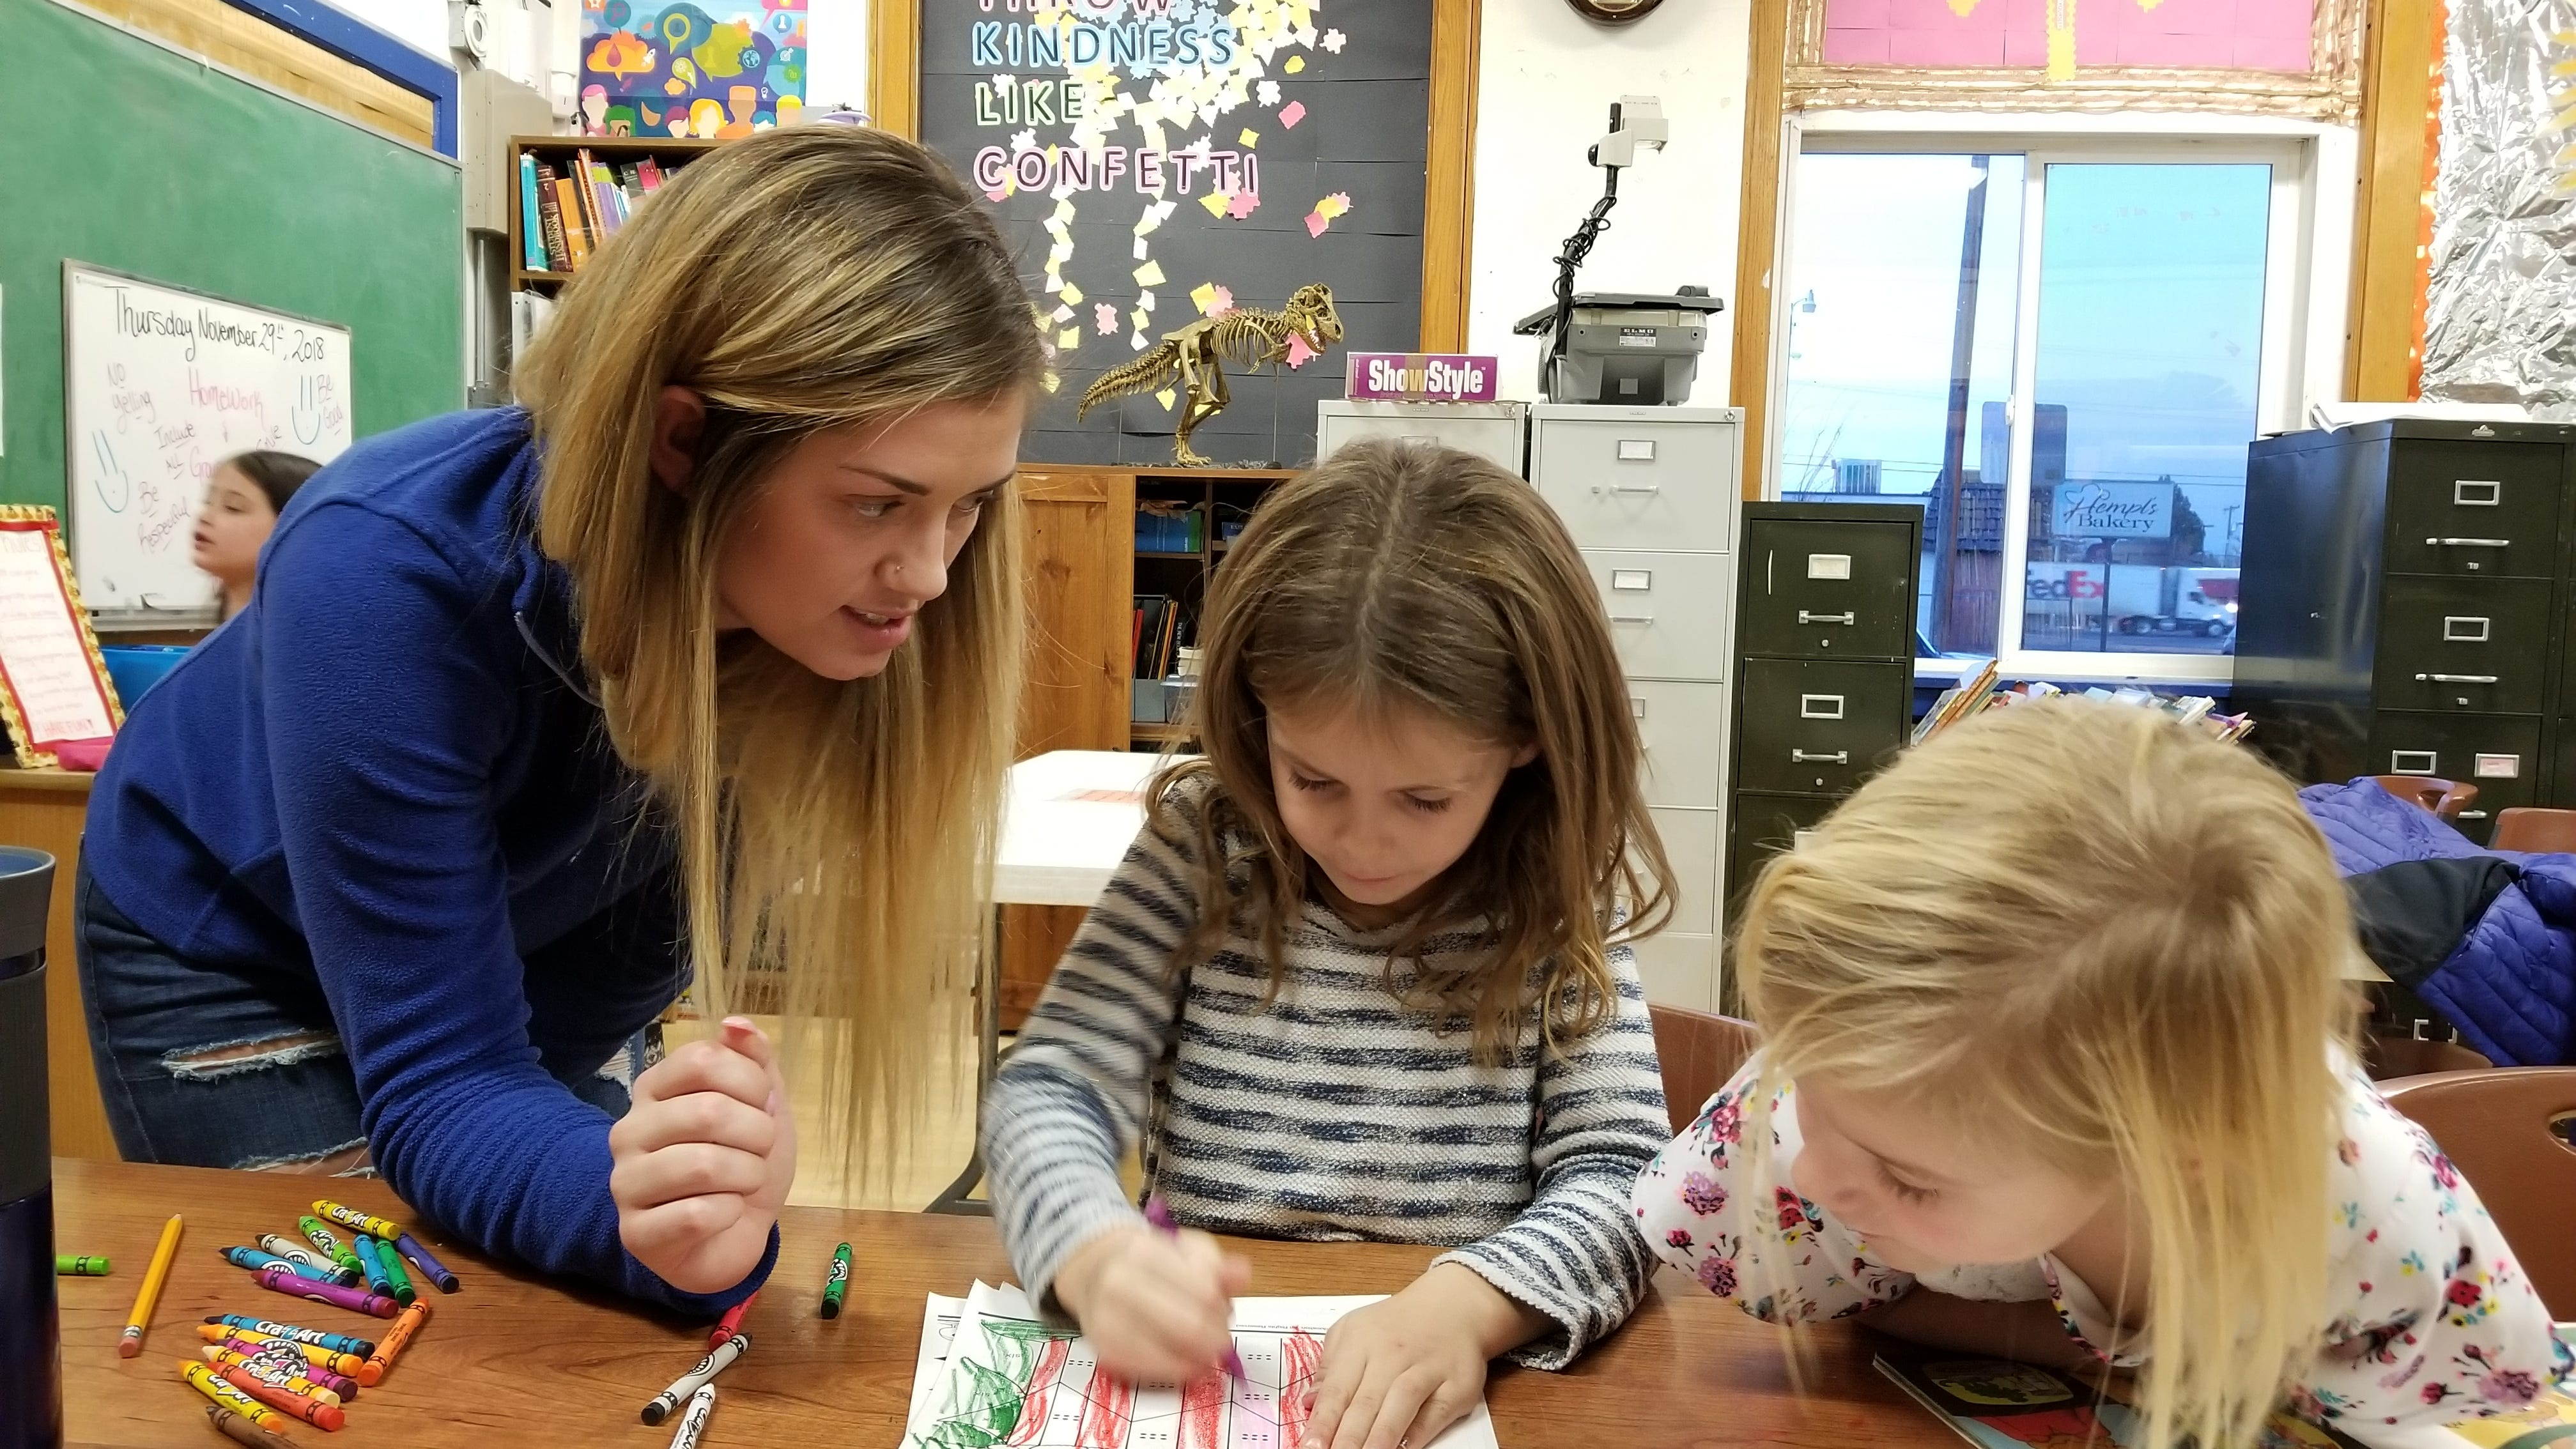 Boys and Girls Club staff member Trinity Brown helps Arizona Cave, 5, and Kinly Lawrence learn addition and counting.